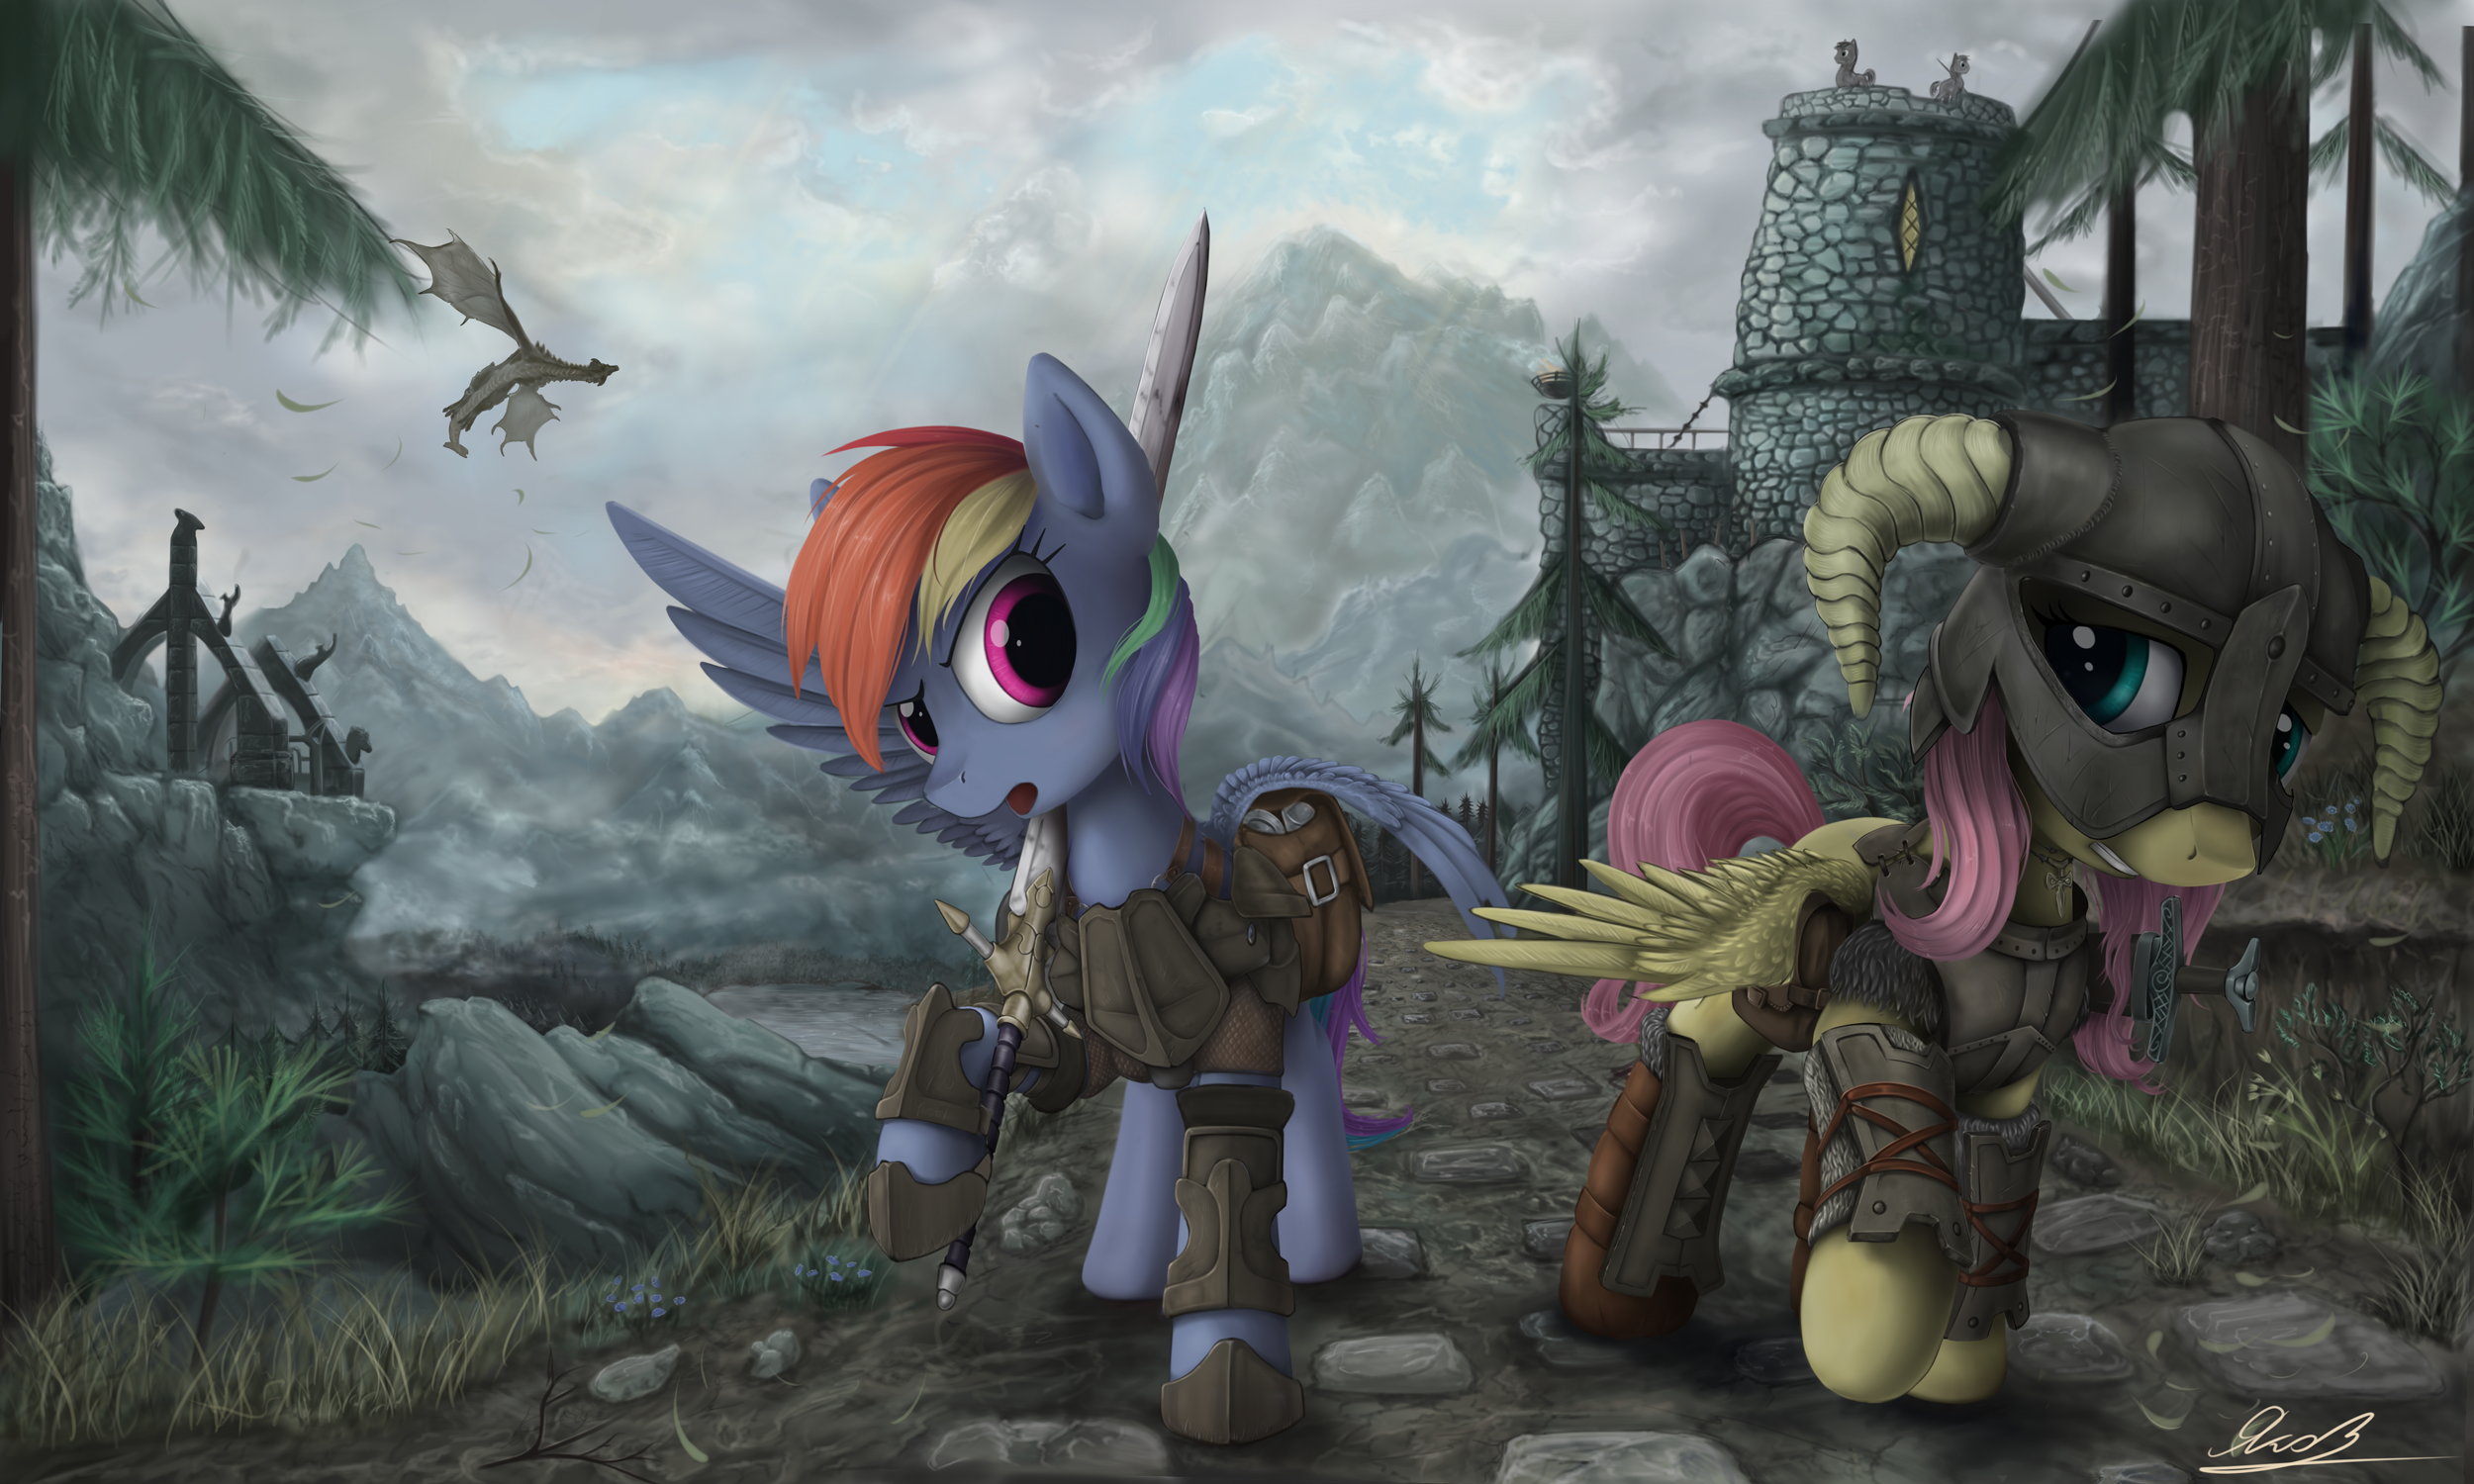 circumvent the problem better by Yakovlev-vad